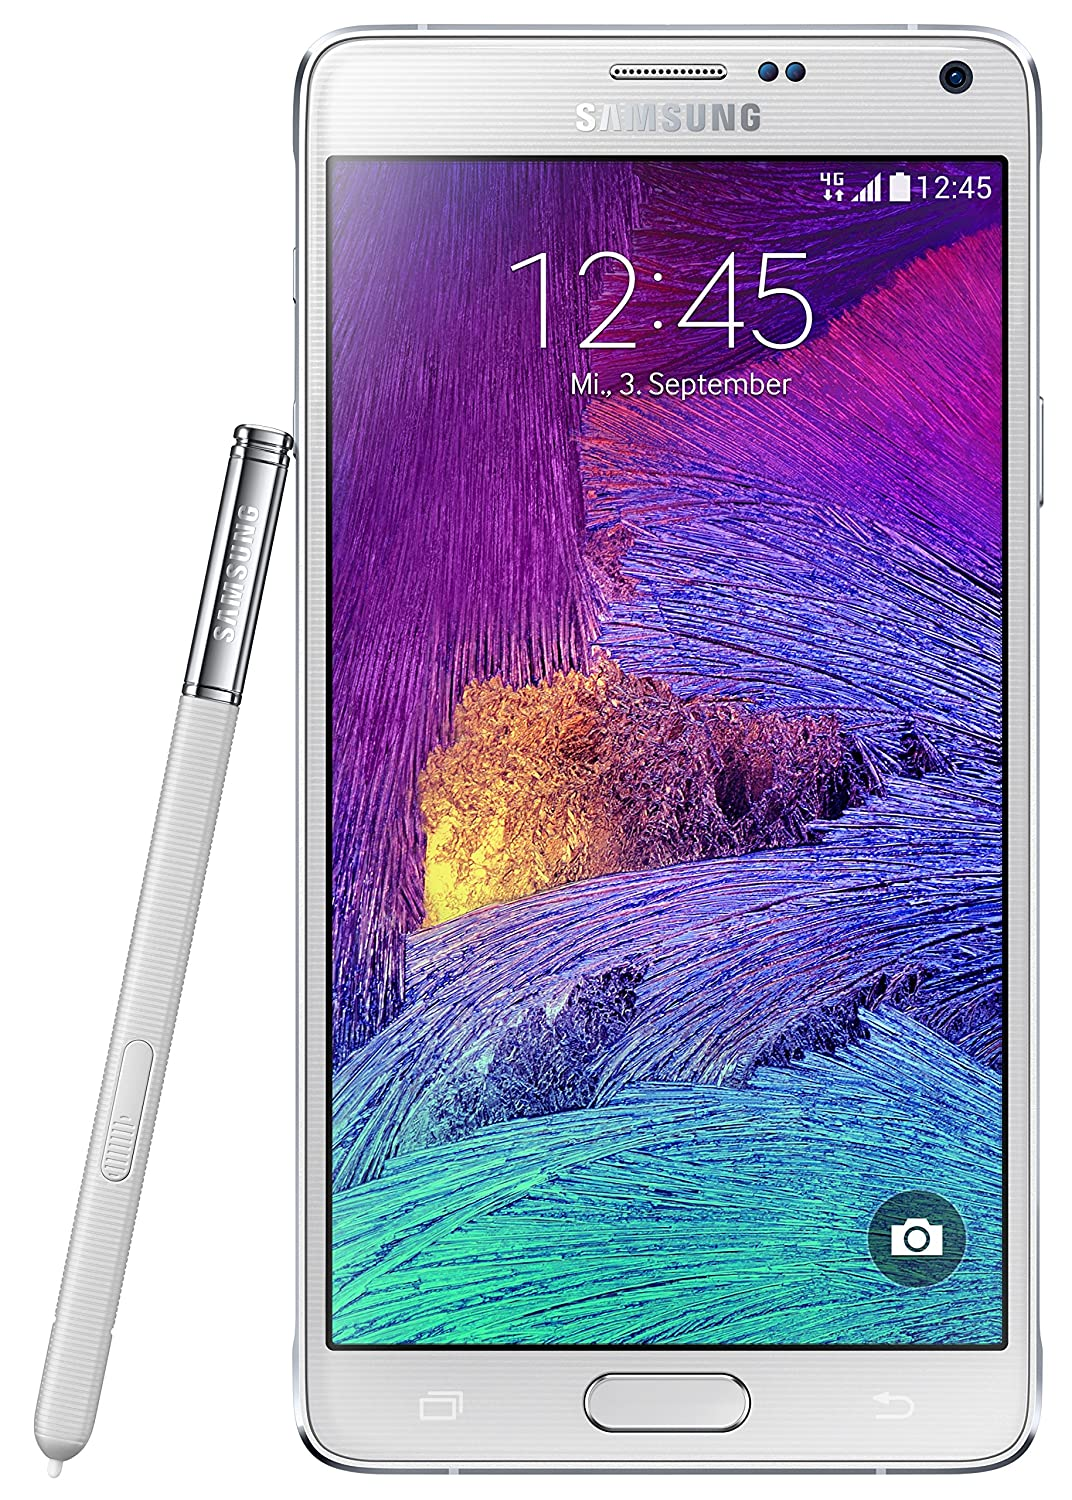 Amazon.com  Samsung Galaxy Note 4 SM-N910F 4G LTE White Factory Unlocked  International Model  Cell Phones   Accessories 78fa6f0f6c29